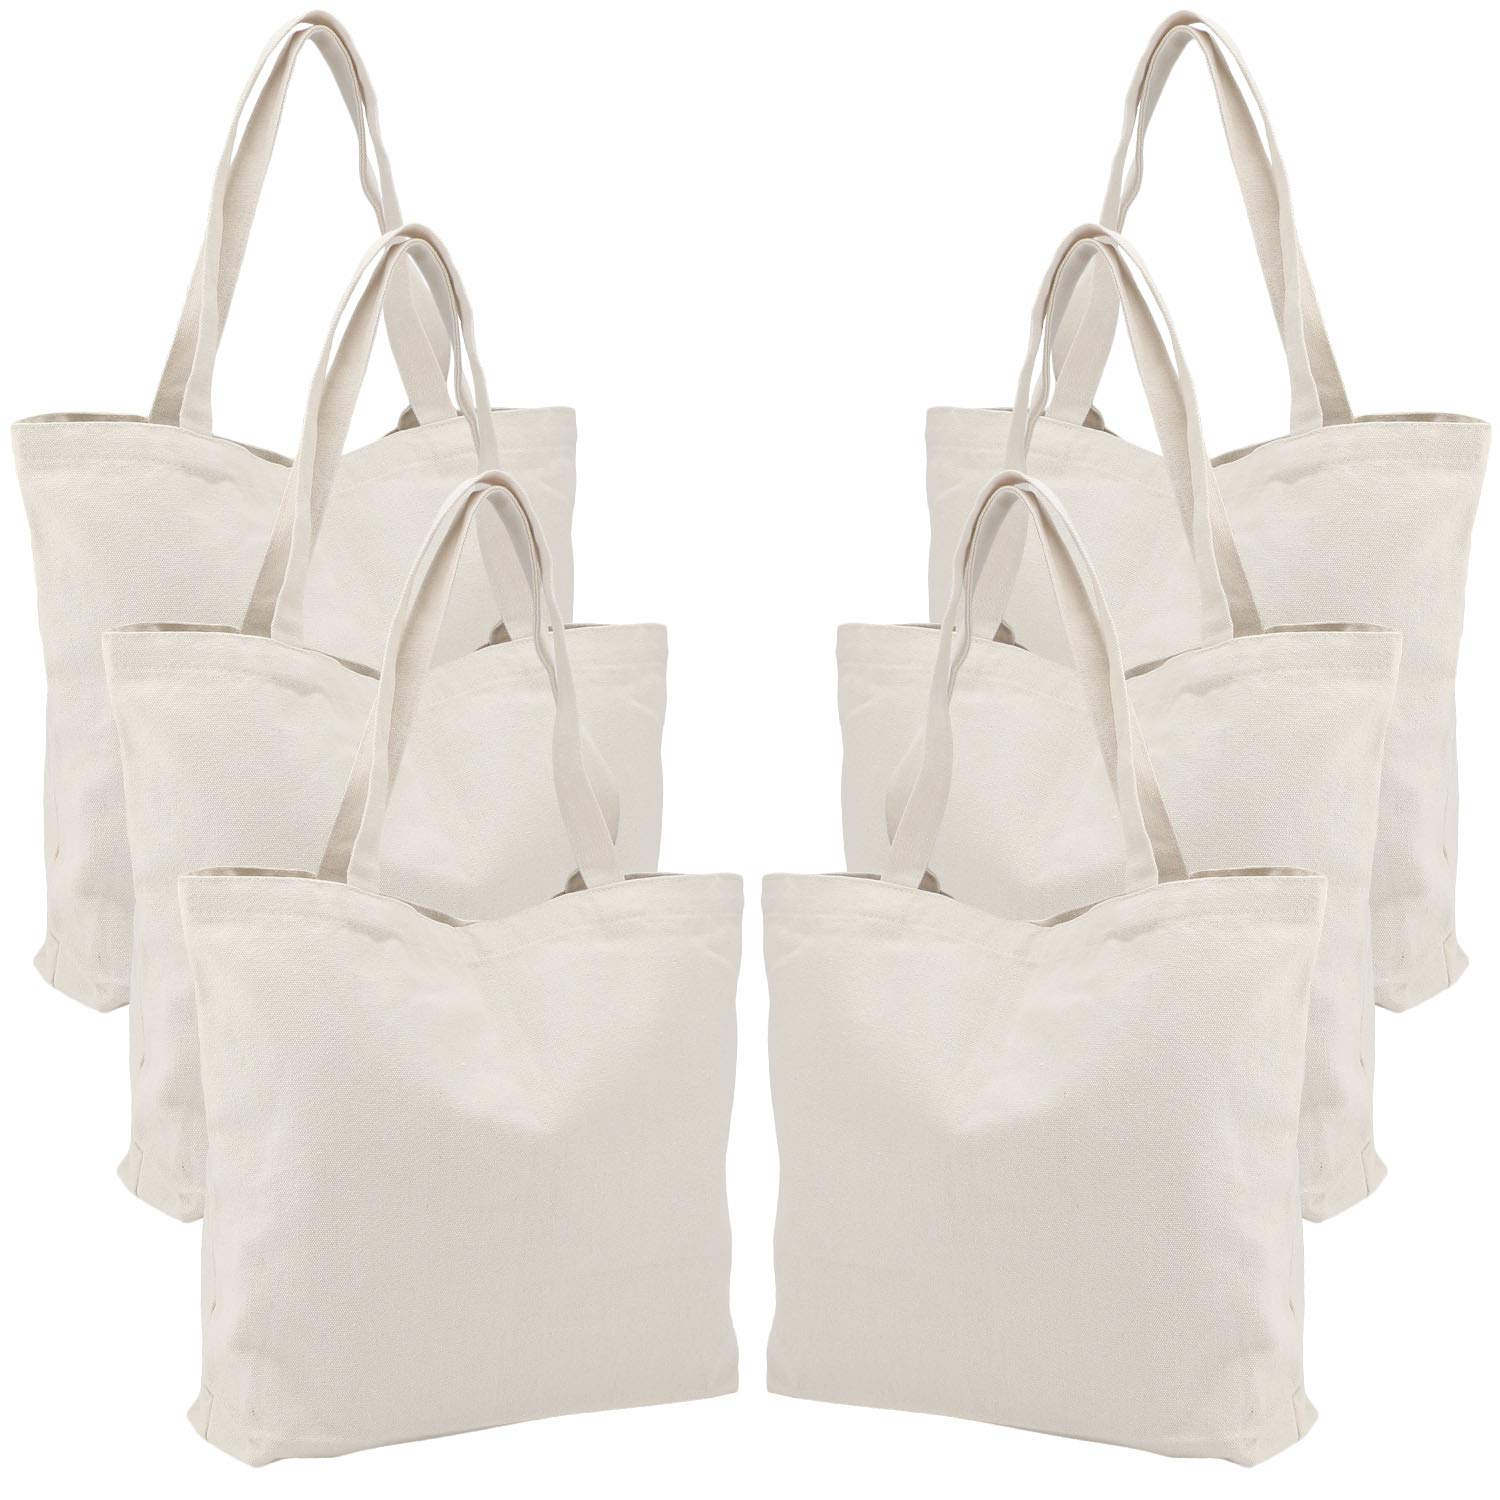 32d1d506194 6 Packs Large Canvas Tote Bags, Segarty 20X15 Inch Reusable Grocery Bags,  Heavy Duty Shopping Bags with Bottom Gusset, Natural White Cloth Blank ...